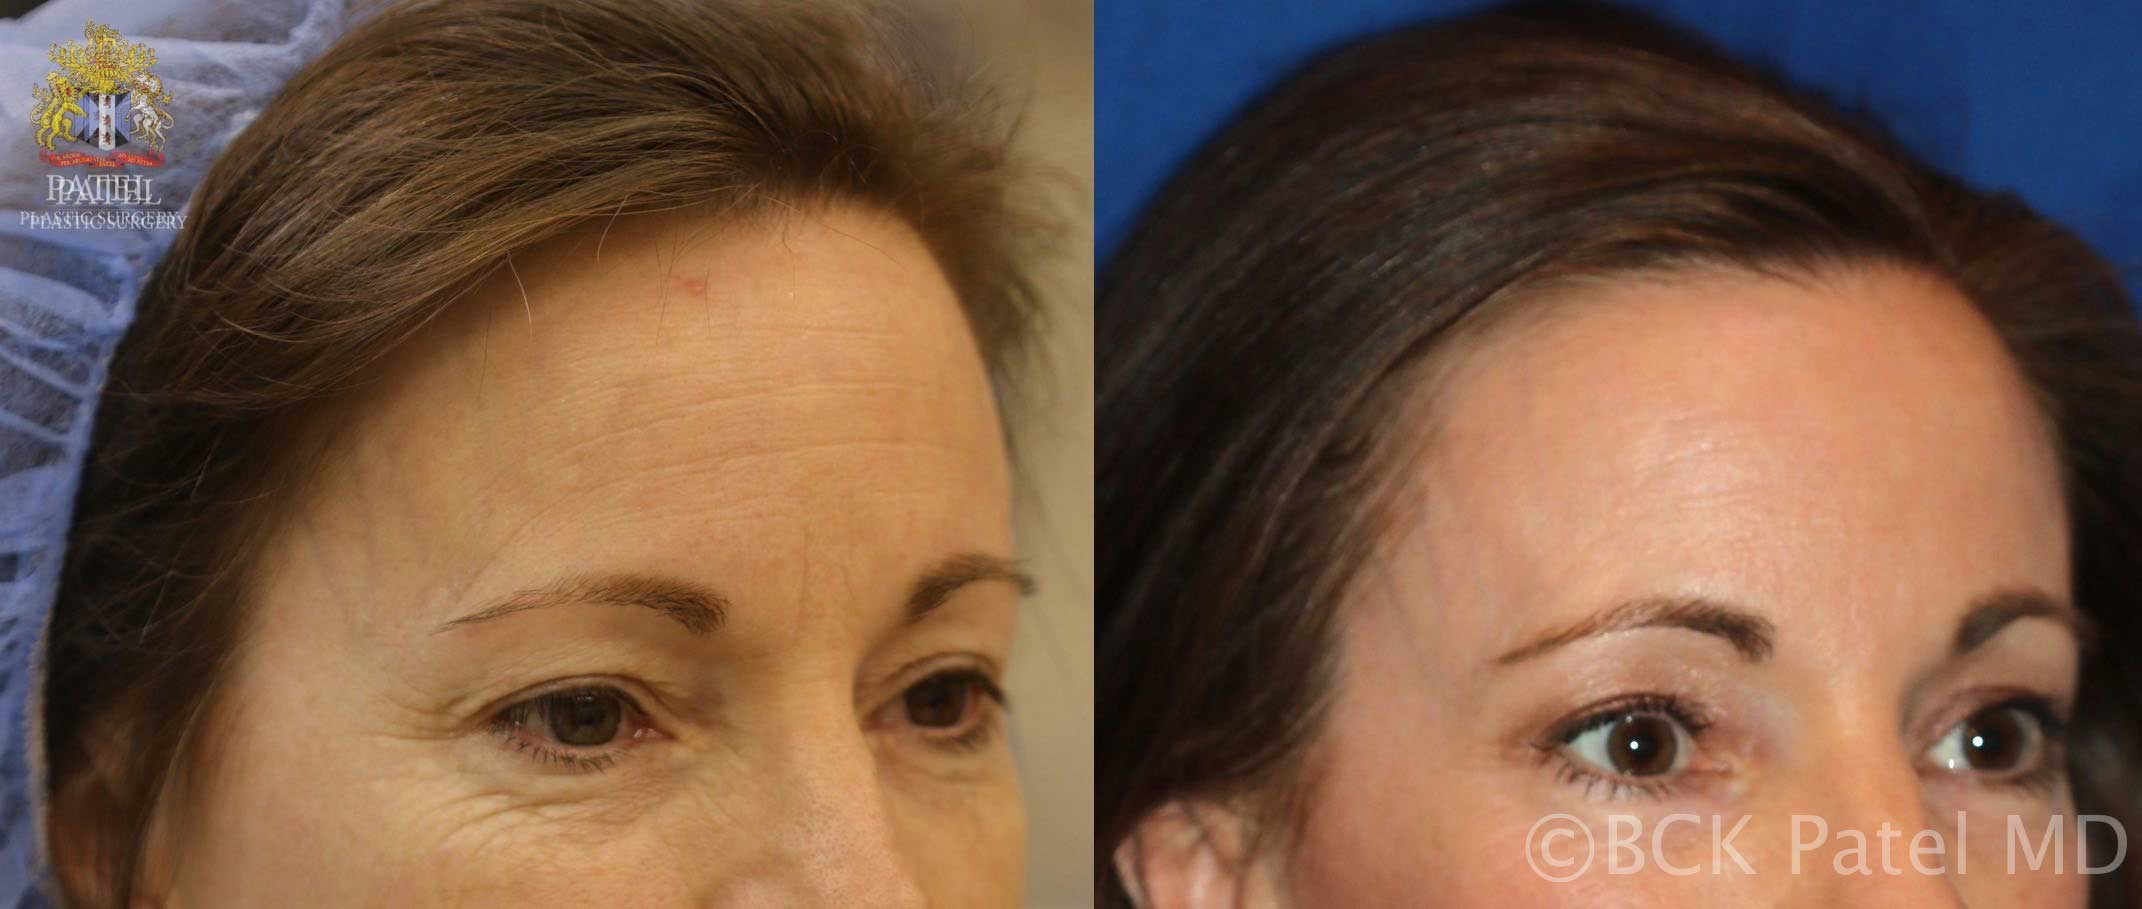 Results of using the CO2 fractionated laser (also known as Fraxel) to improve forehead lines and pigment by Dr. Bhupendra C. K. Patel MD, FRCS